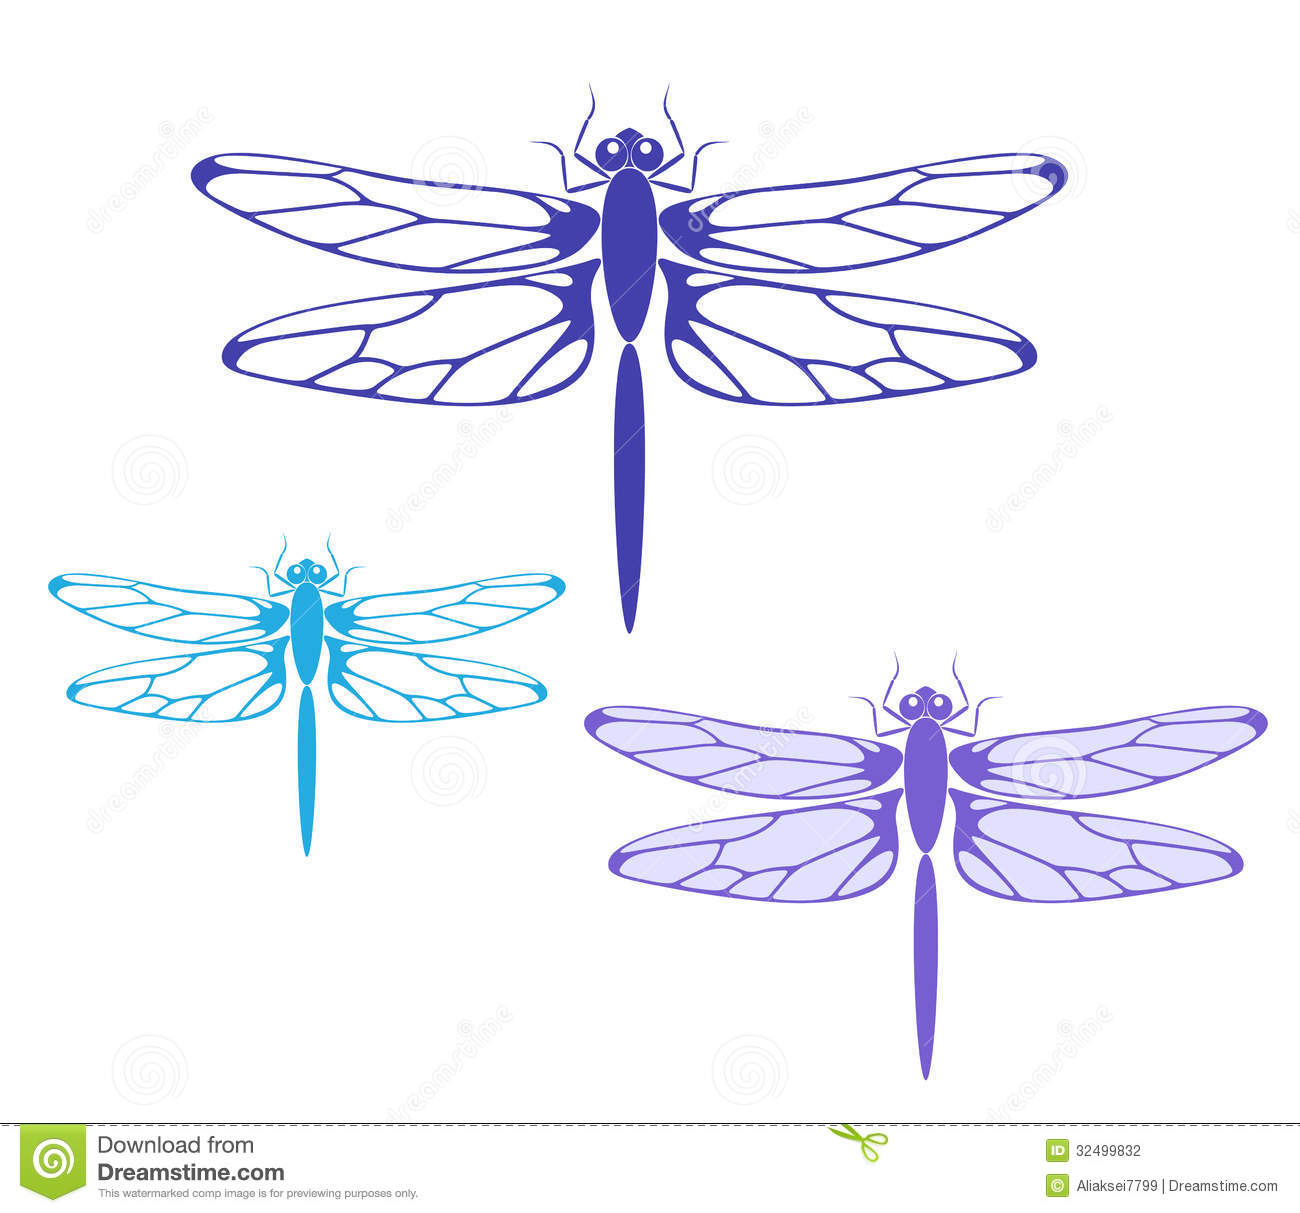 Dragonfly. Isolated objects on white background. Vector illustration ... Water In Hand